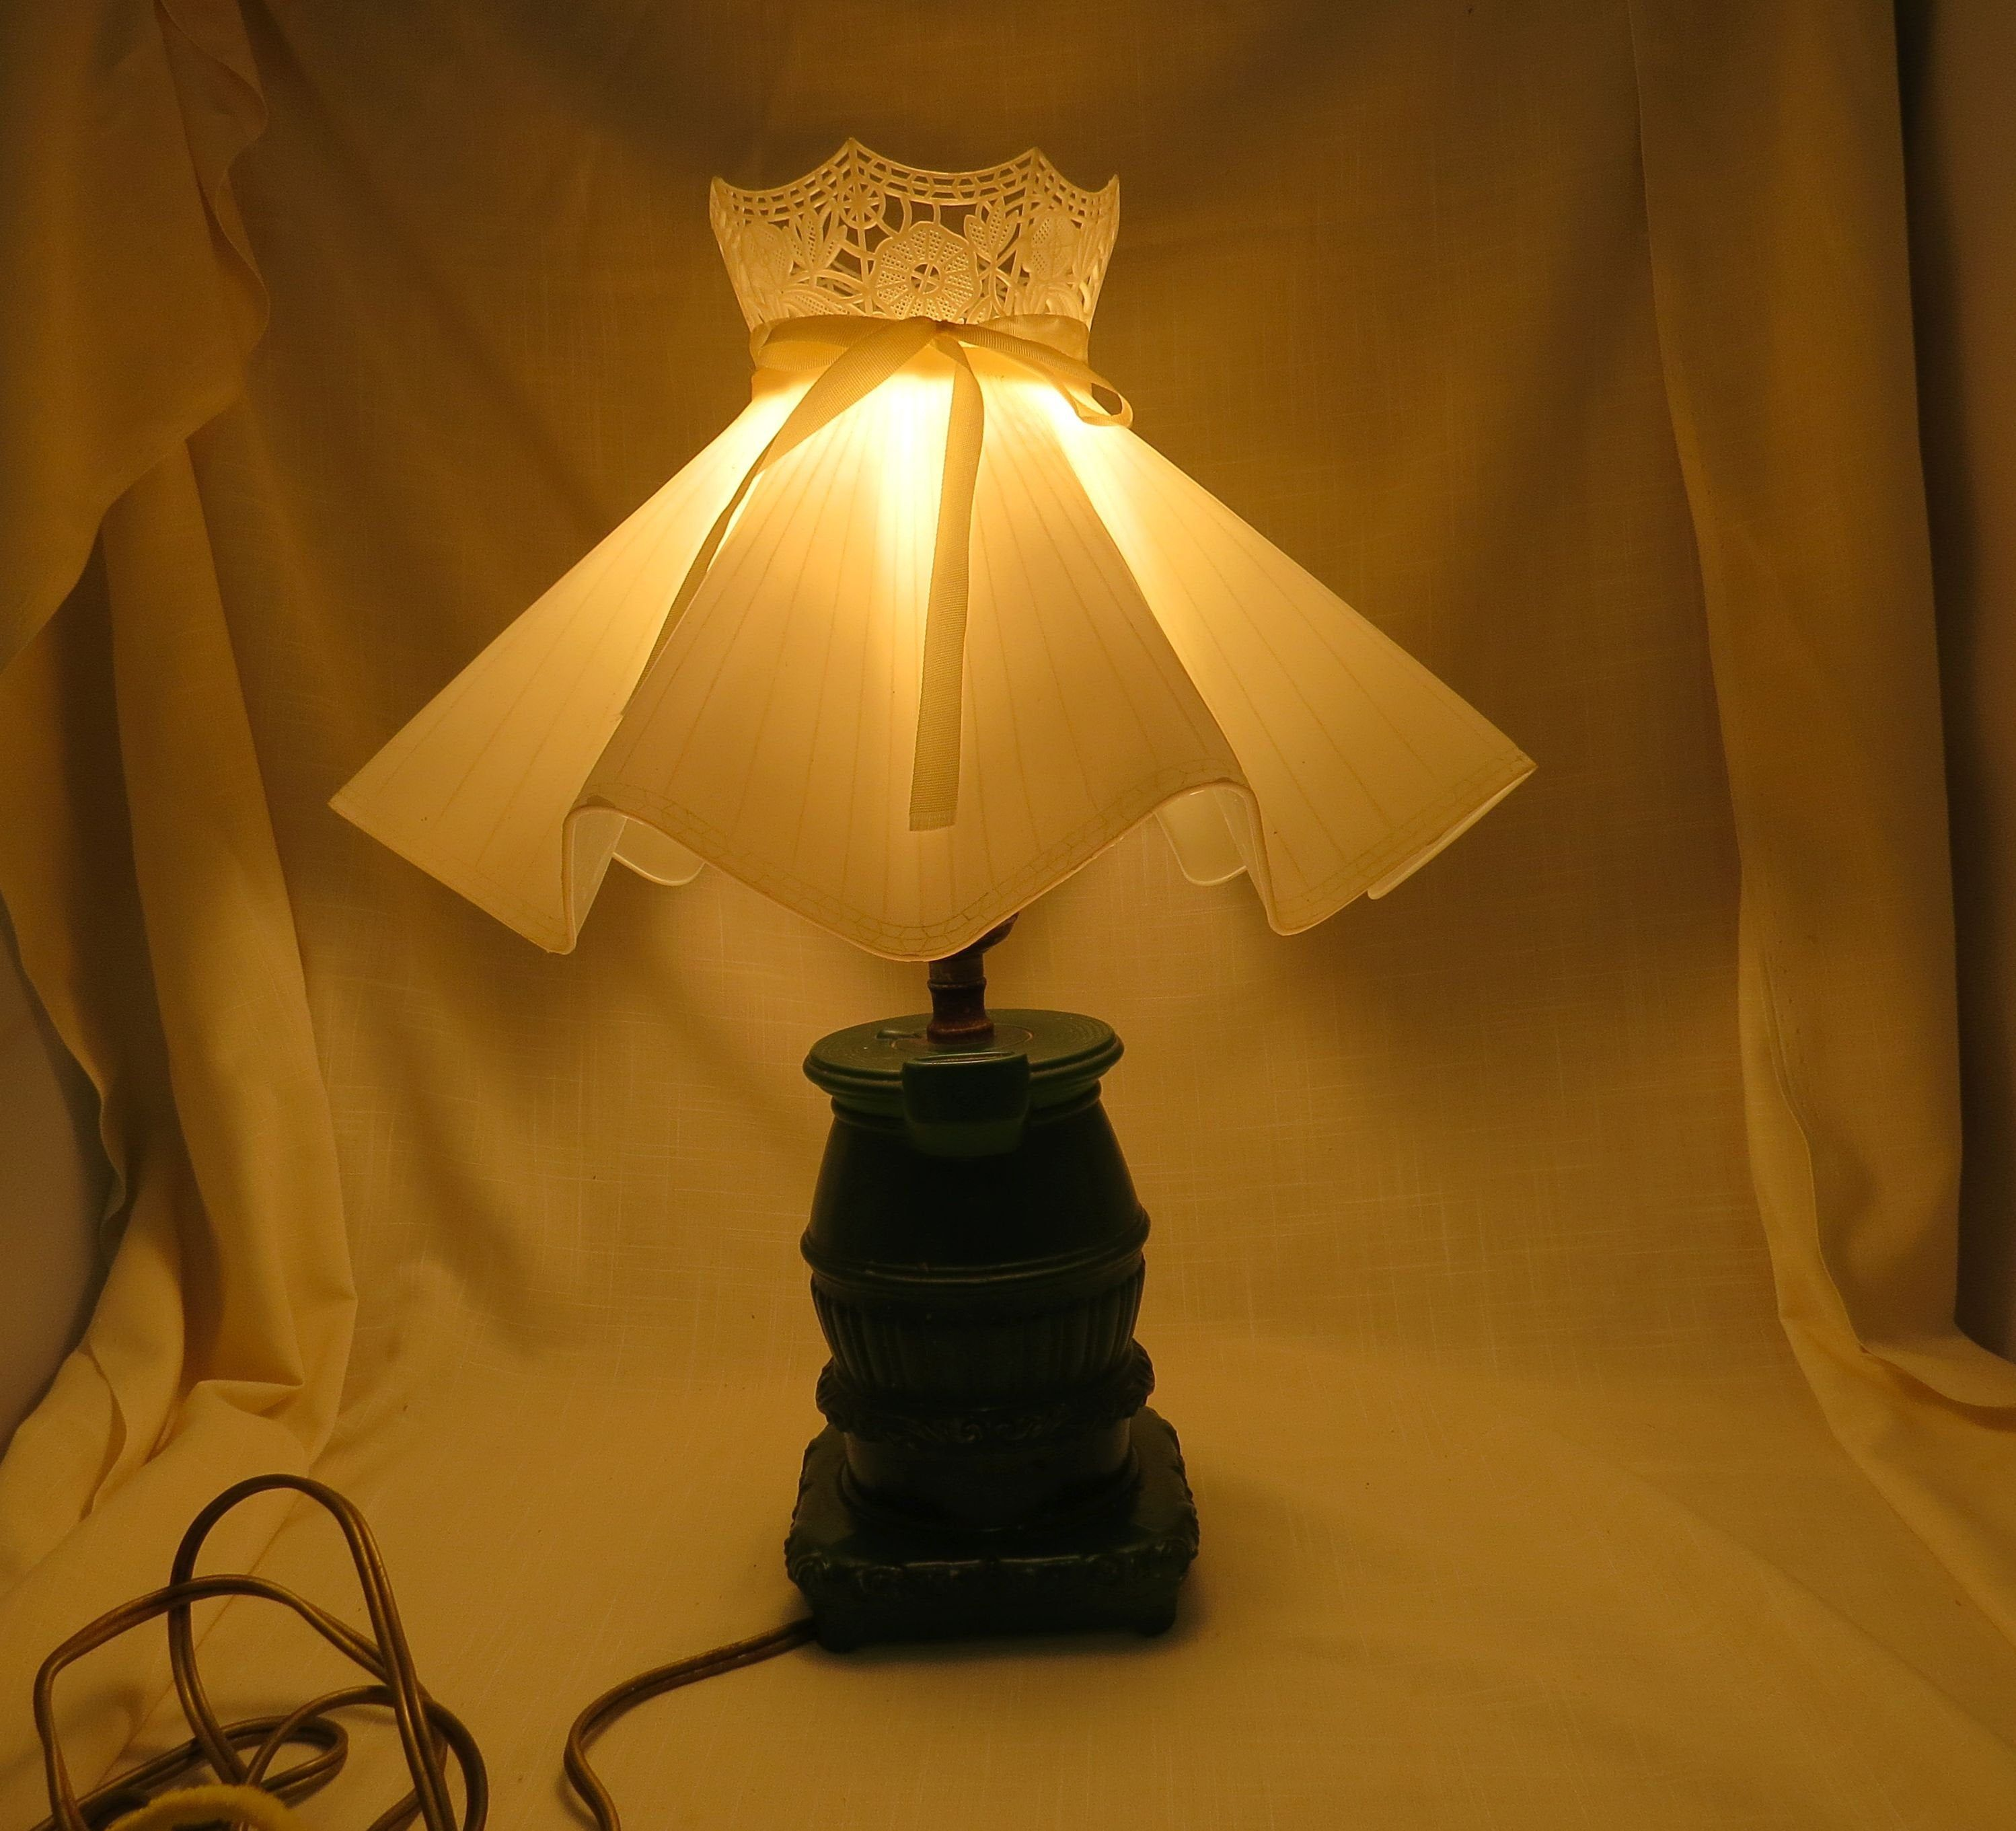 Vintage Potbelly Stove Green Glass Lamp Plastic Pierced Shade In 2020 Glass Lamp Lamp Green Glass